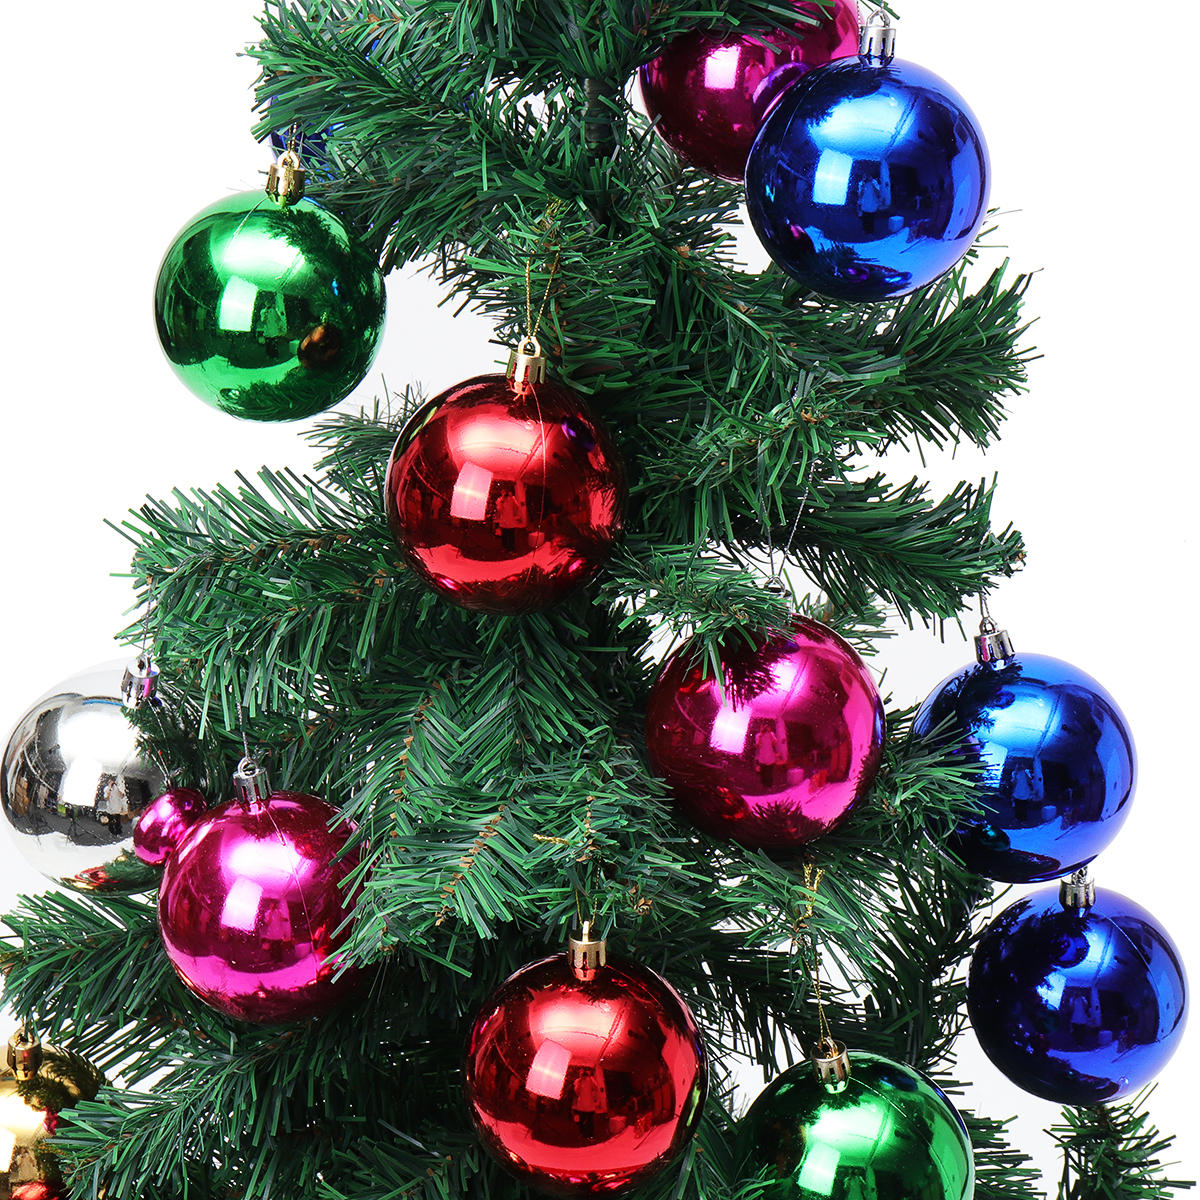 Christmas Balls.24pcs Merry Christmas Tree Decoration Xmas Balls Ornaments Party Wedding Gift